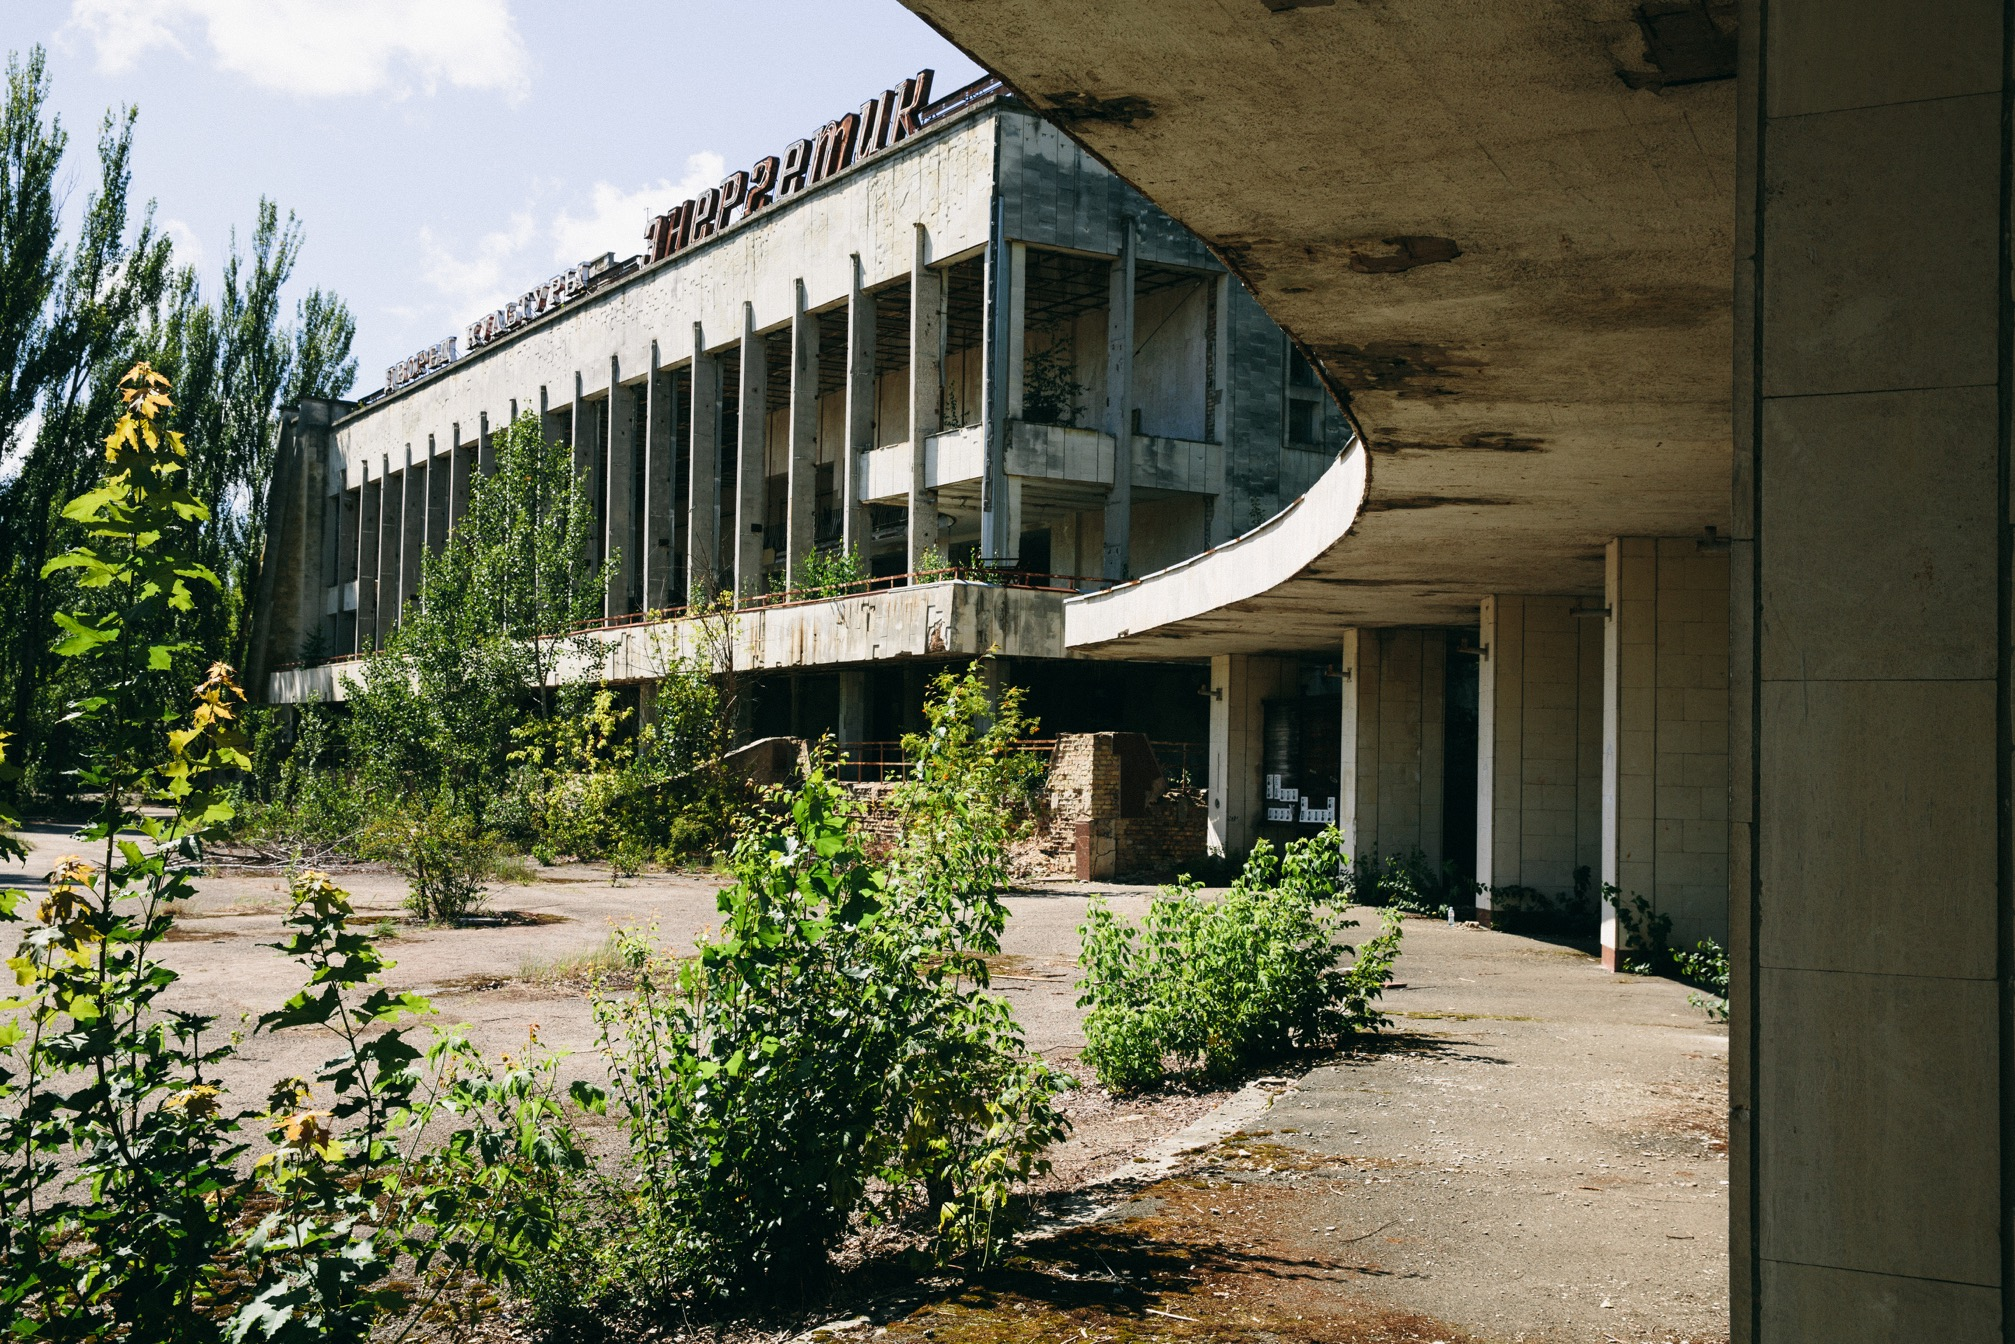 Chernobyl: Ghost town or Ukraine's most profitable tourist attraction?